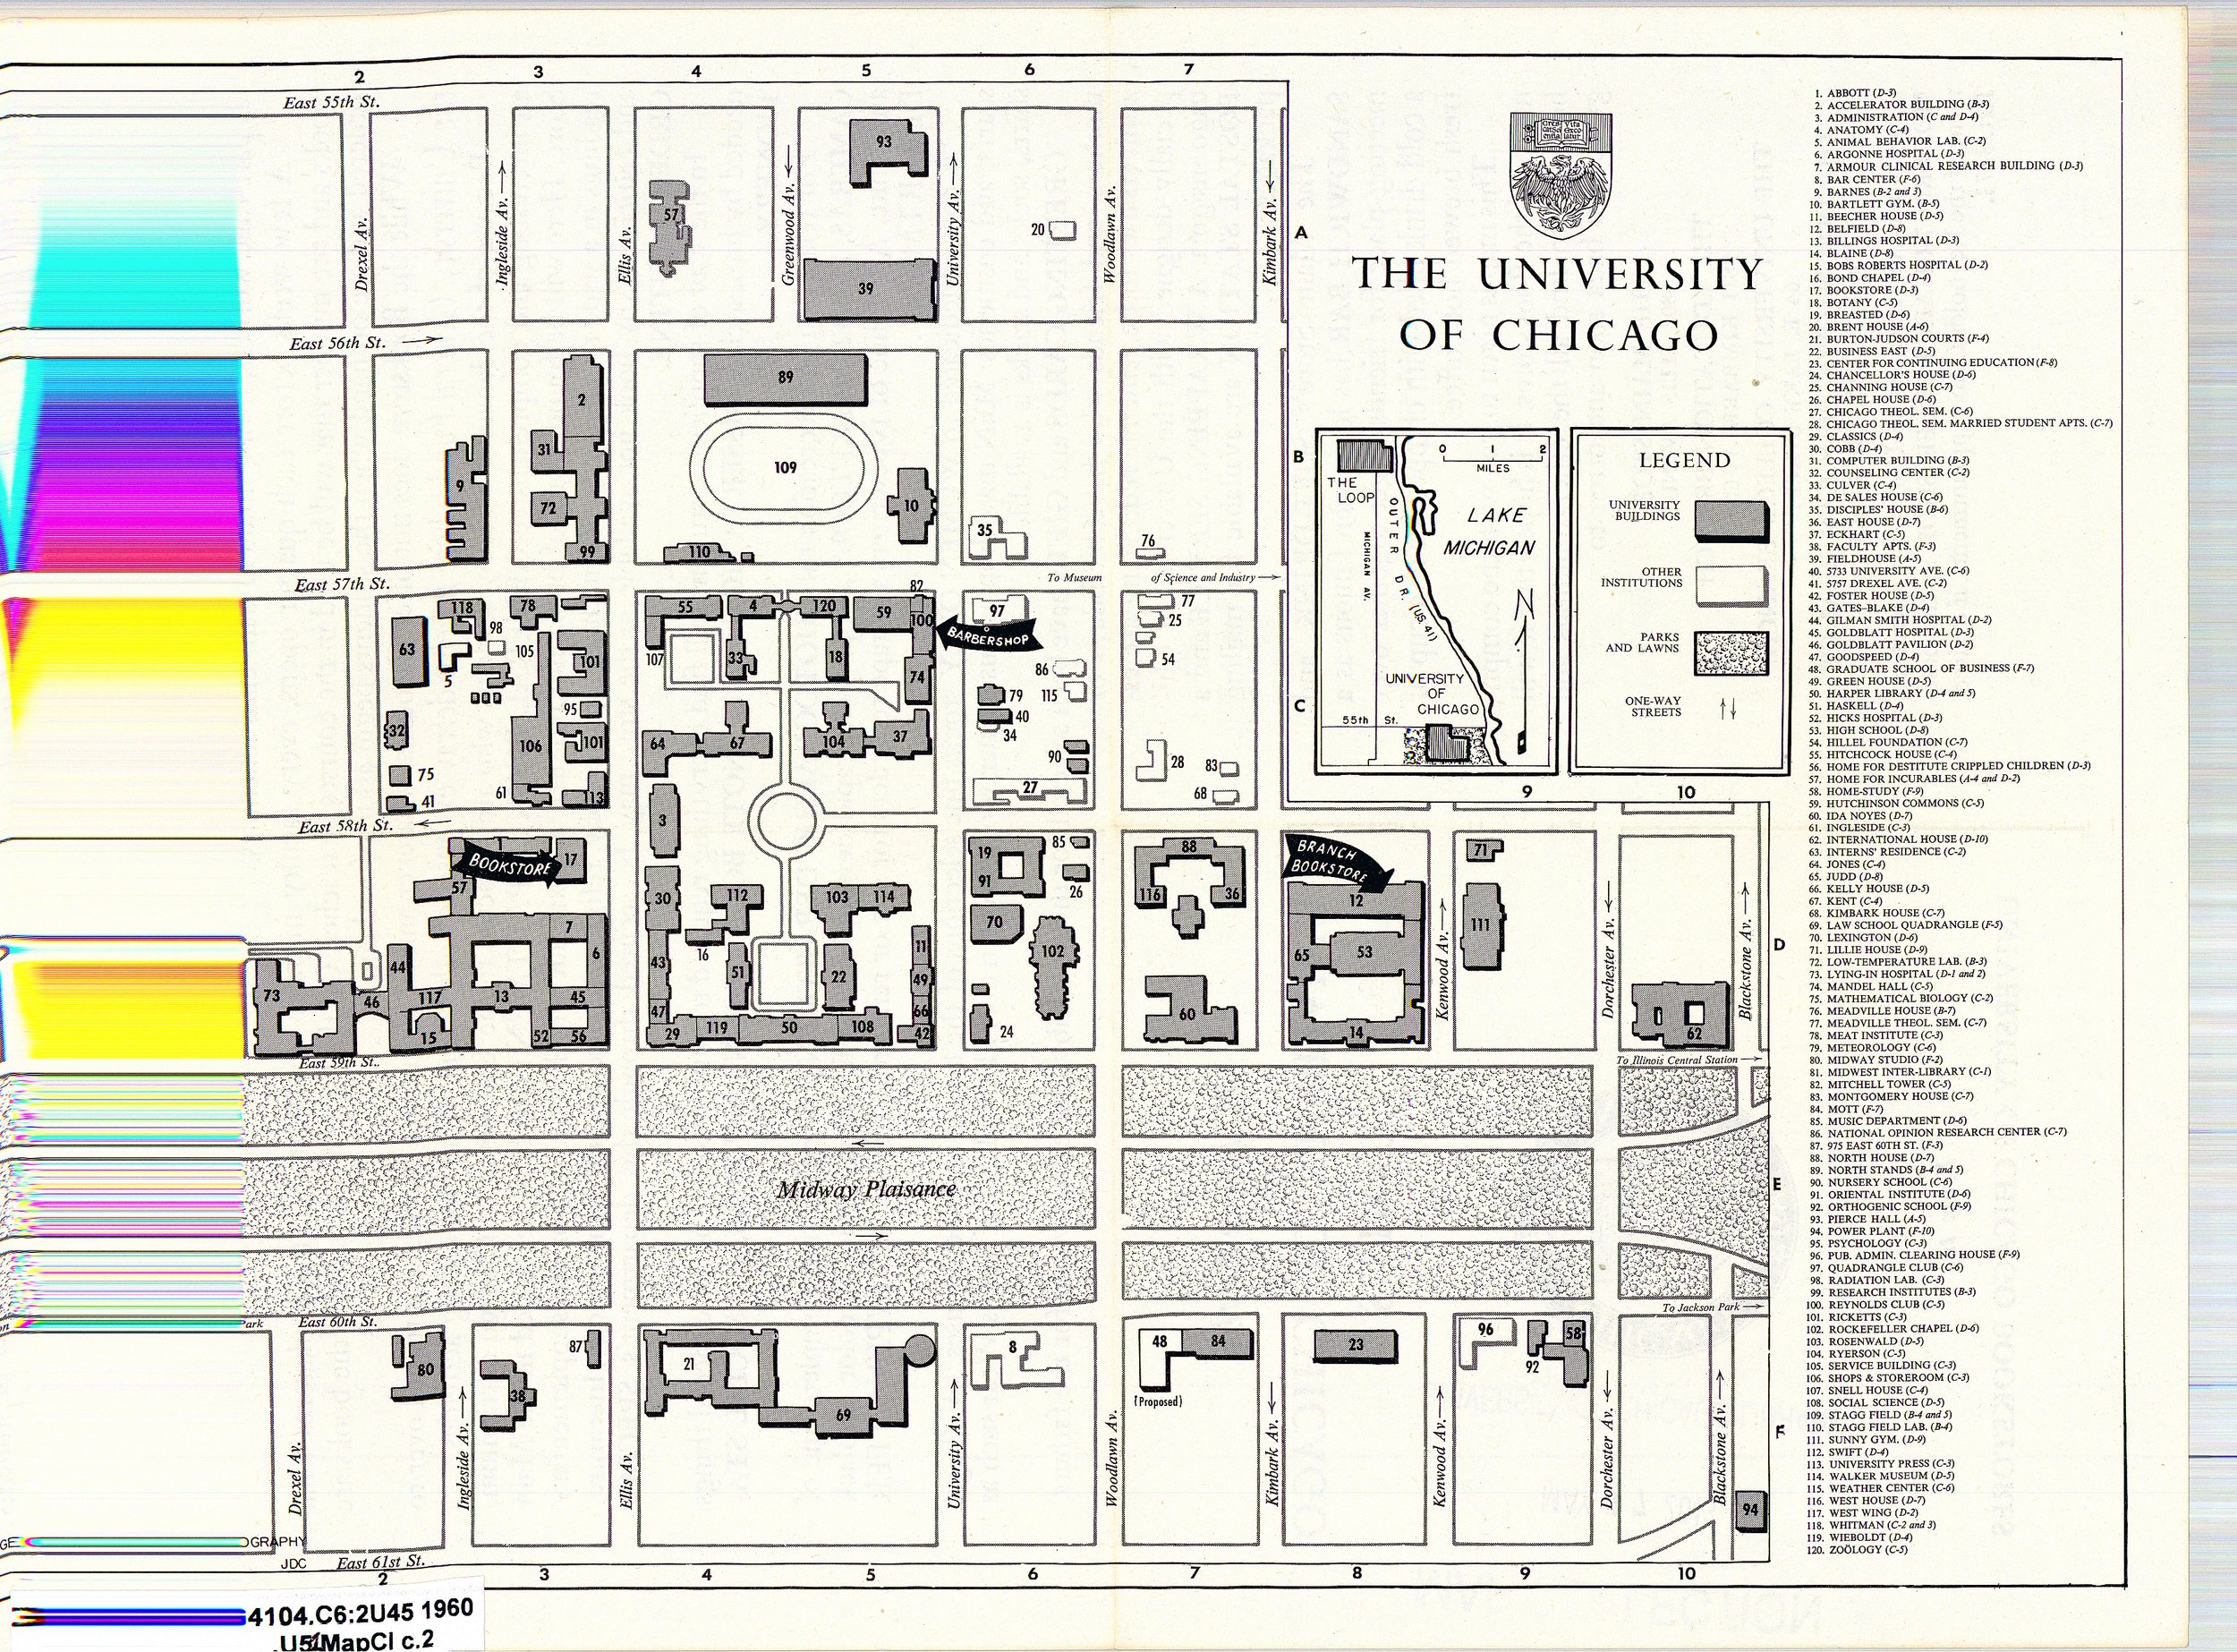 Campus Map from 1960 (complete with aesthetically-pleasing scanning error)